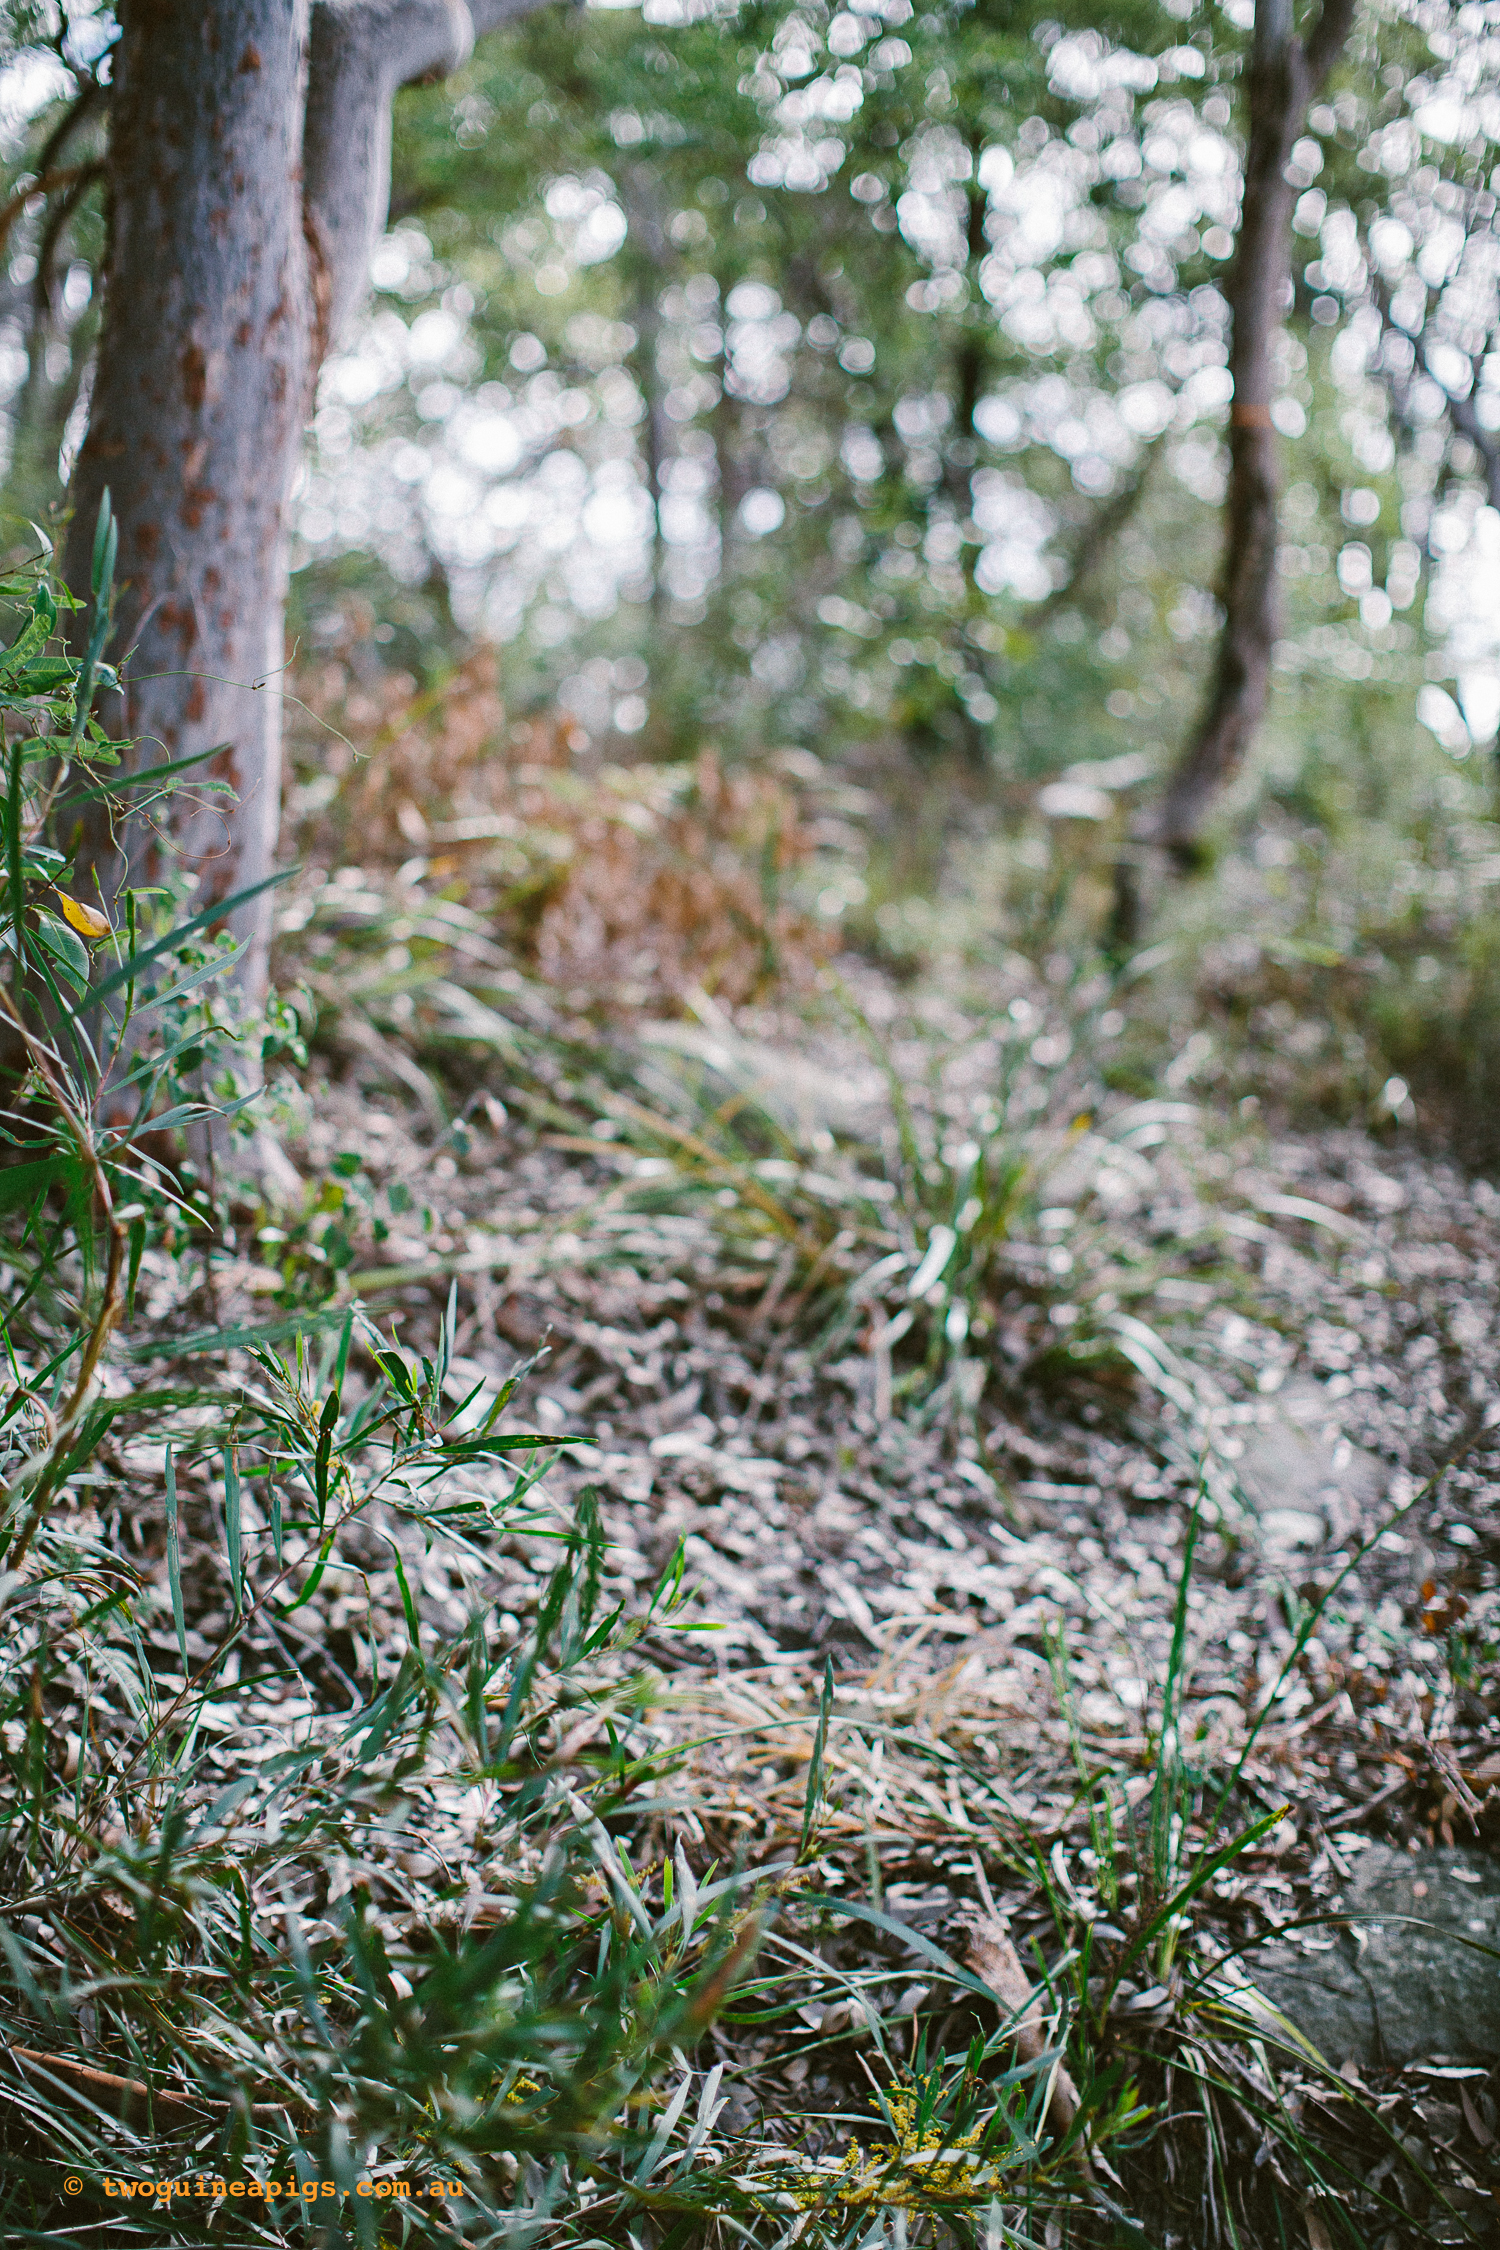 twoguineapigs_pet_photography_berry_island_reserve_wollstonecraft_location_scout_1500-15.jpg